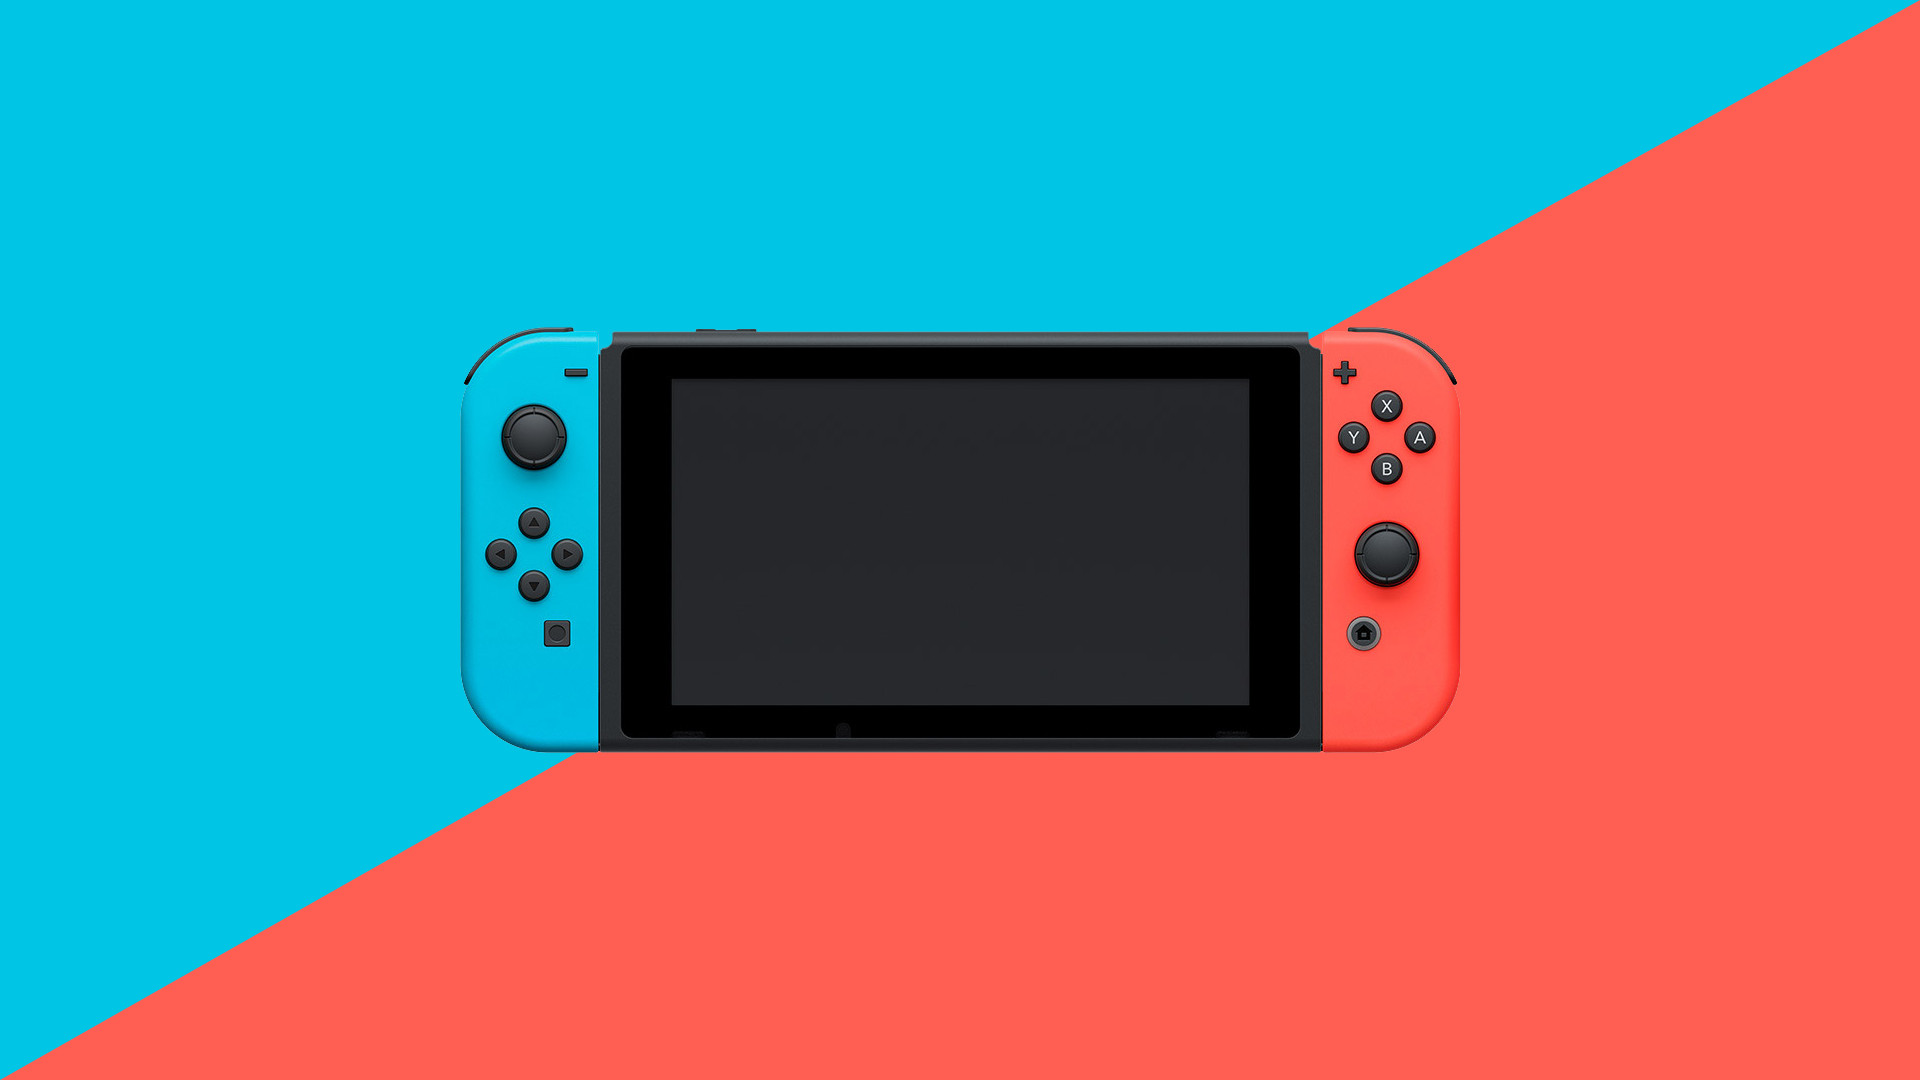 Nintendo iPhone Wallpaper (74+ images)